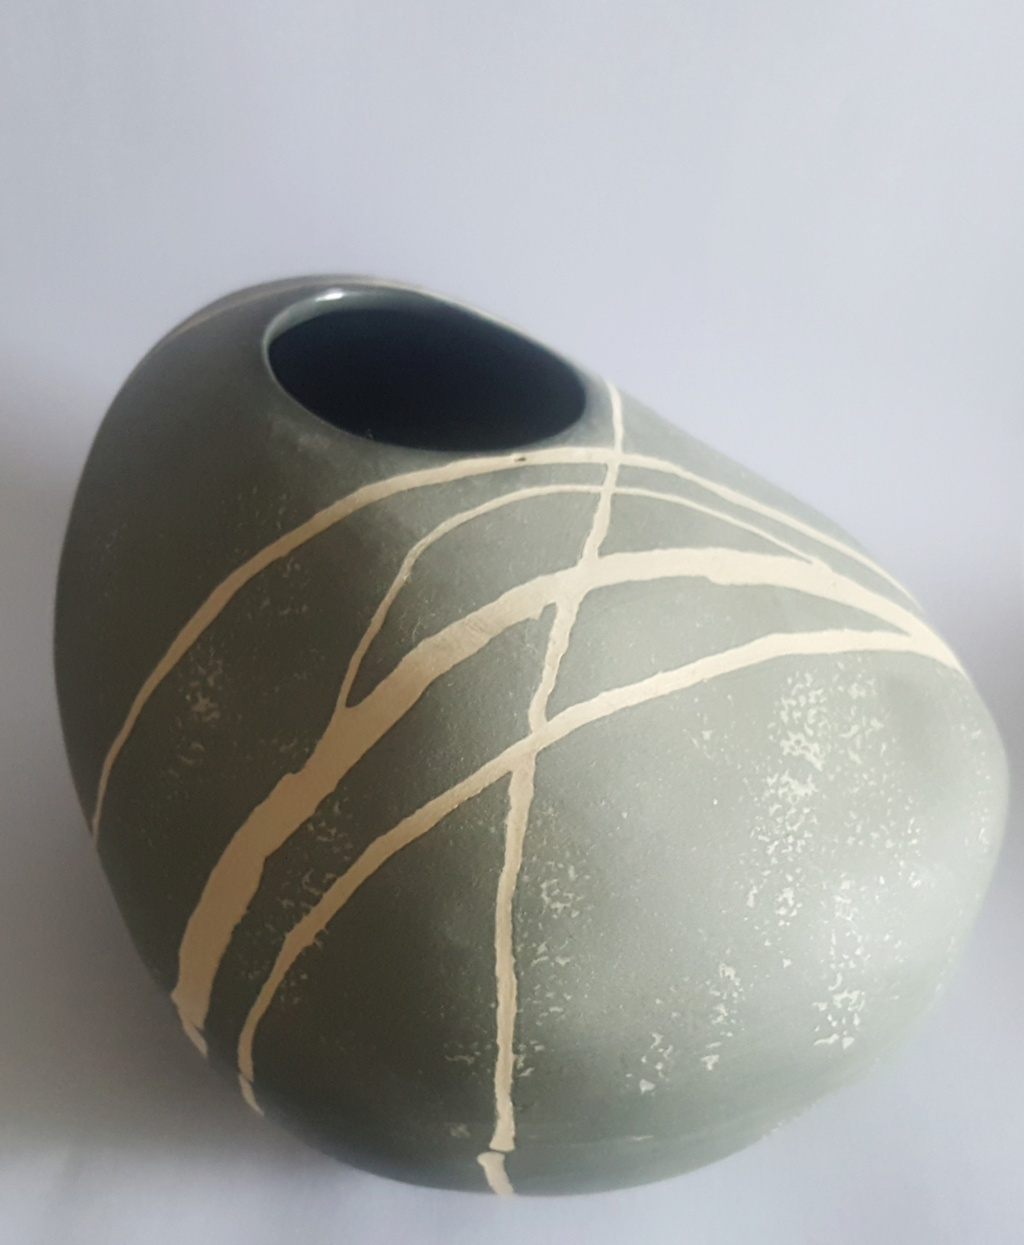 Geoff James, Fosters pottery 20200818